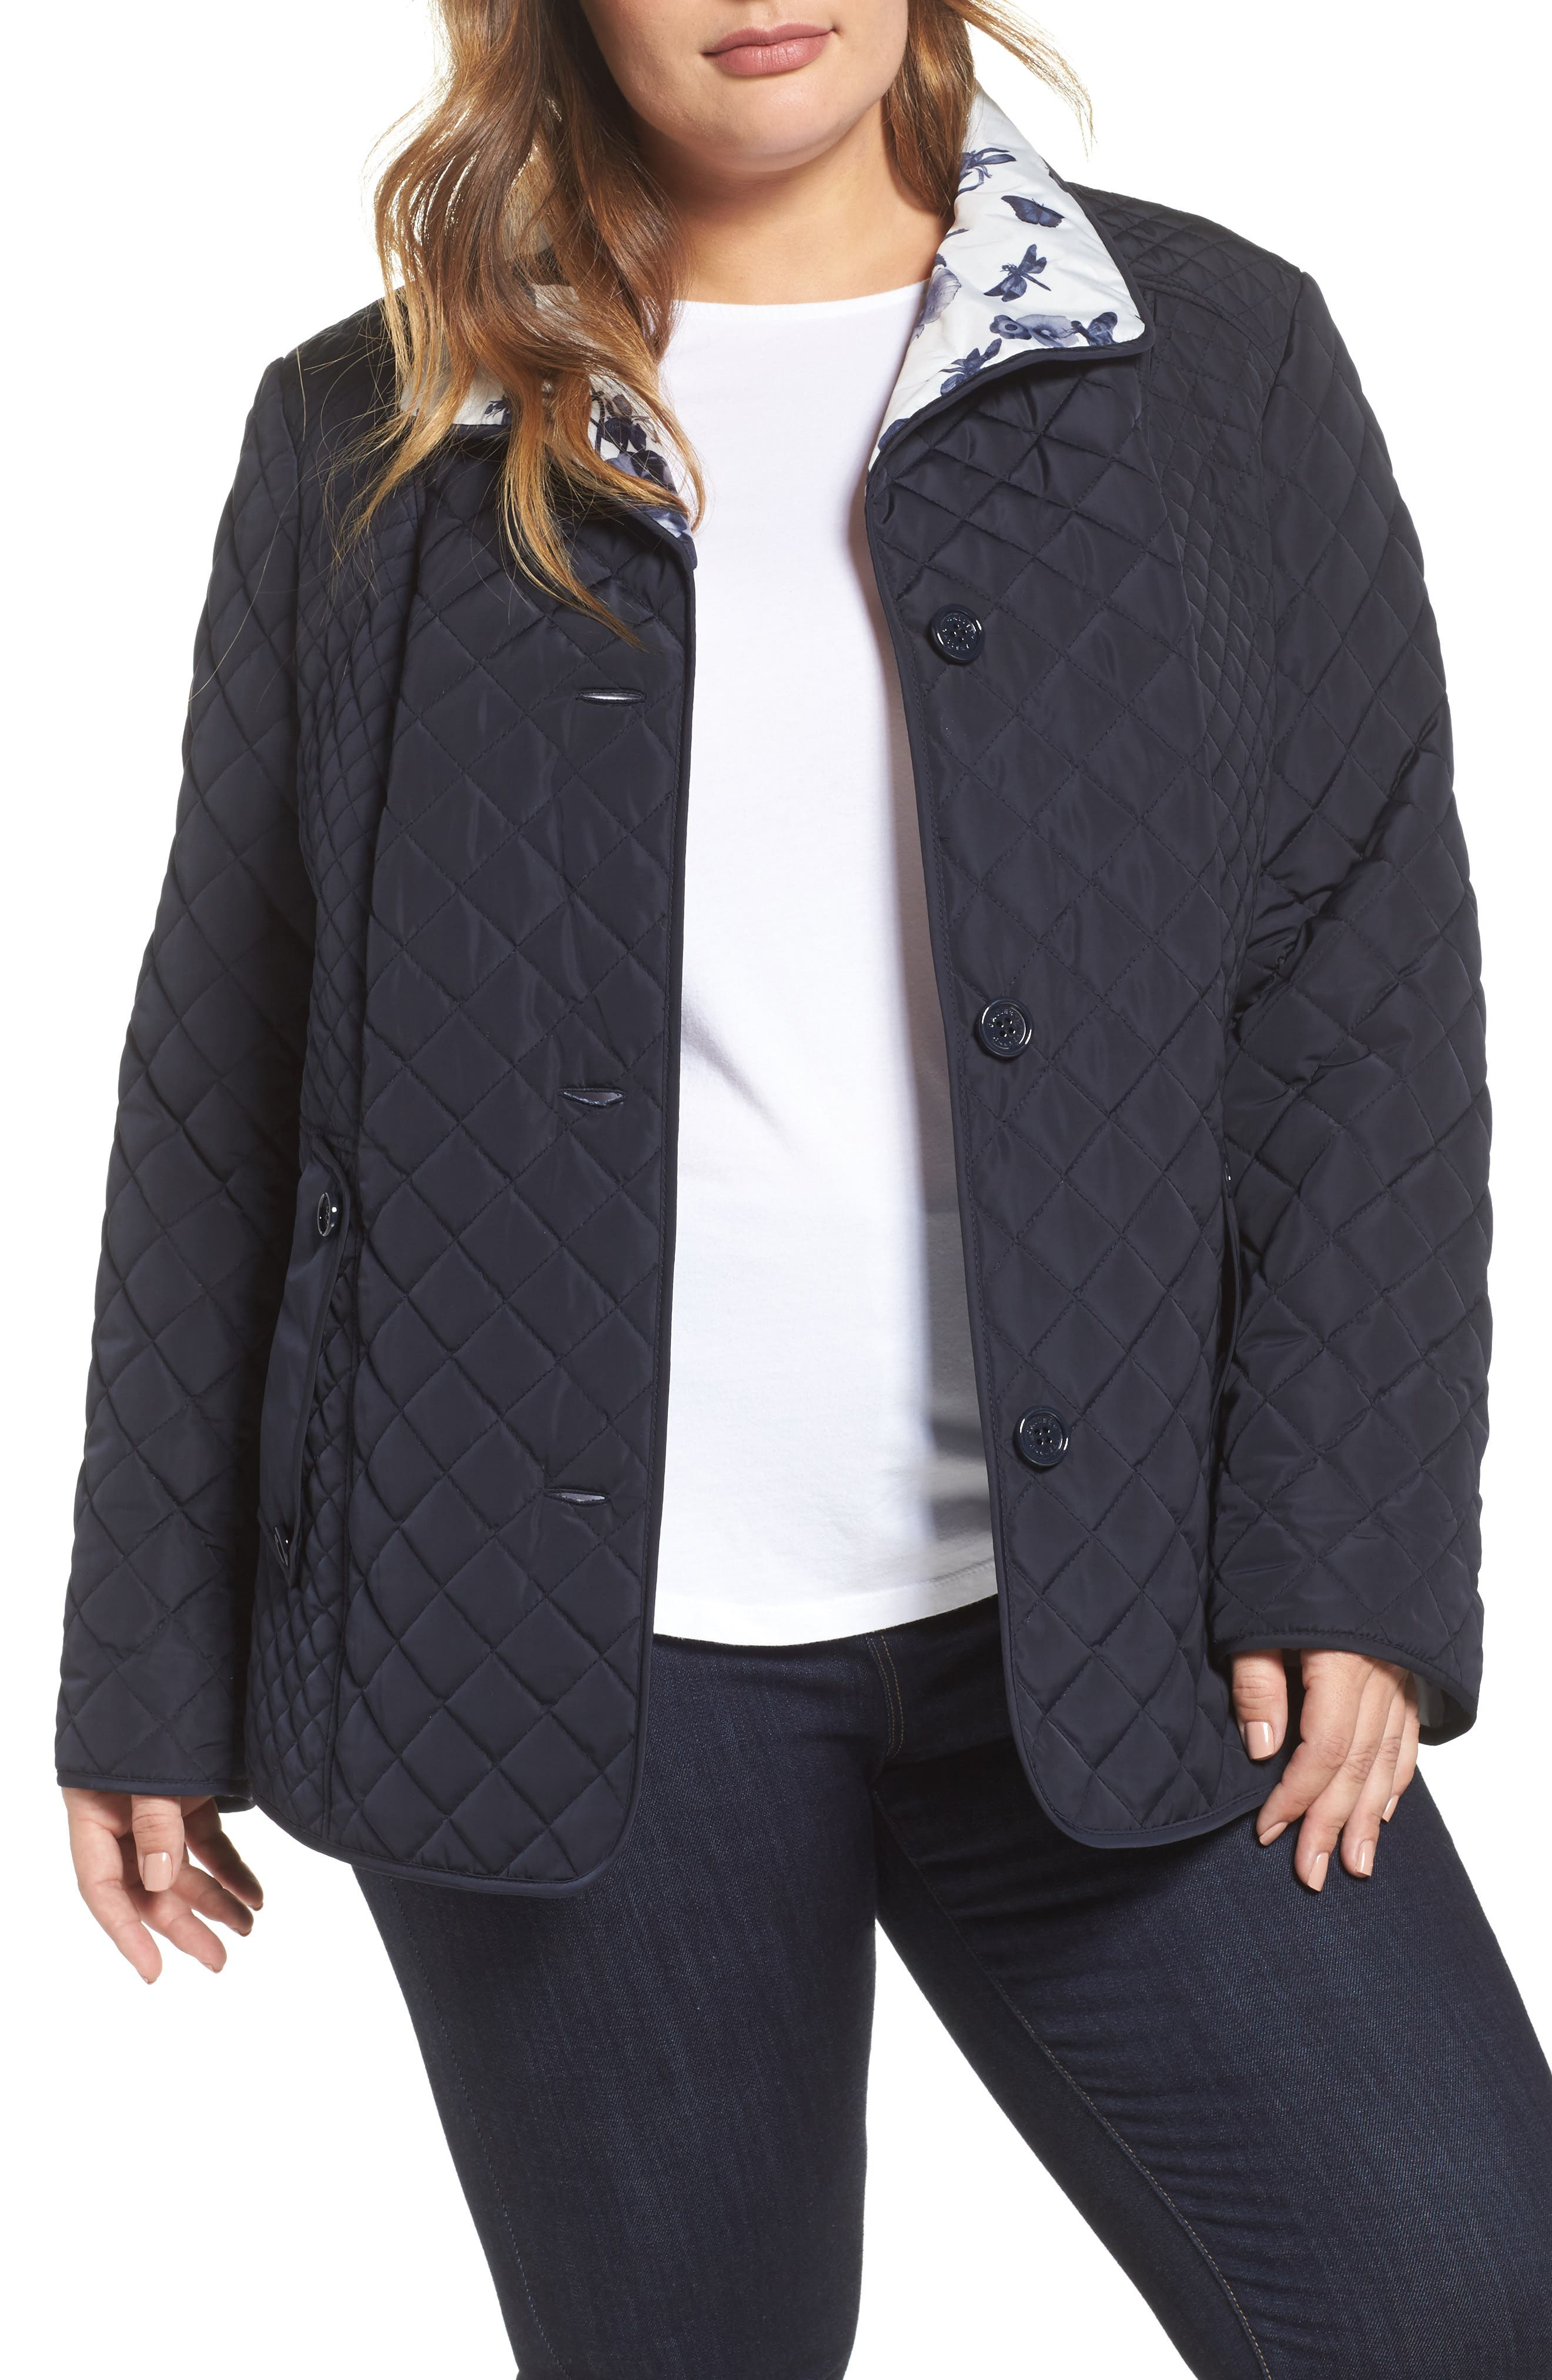 Print Collar Quilted Jacket,                             Main thumbnail 1, color,                             410